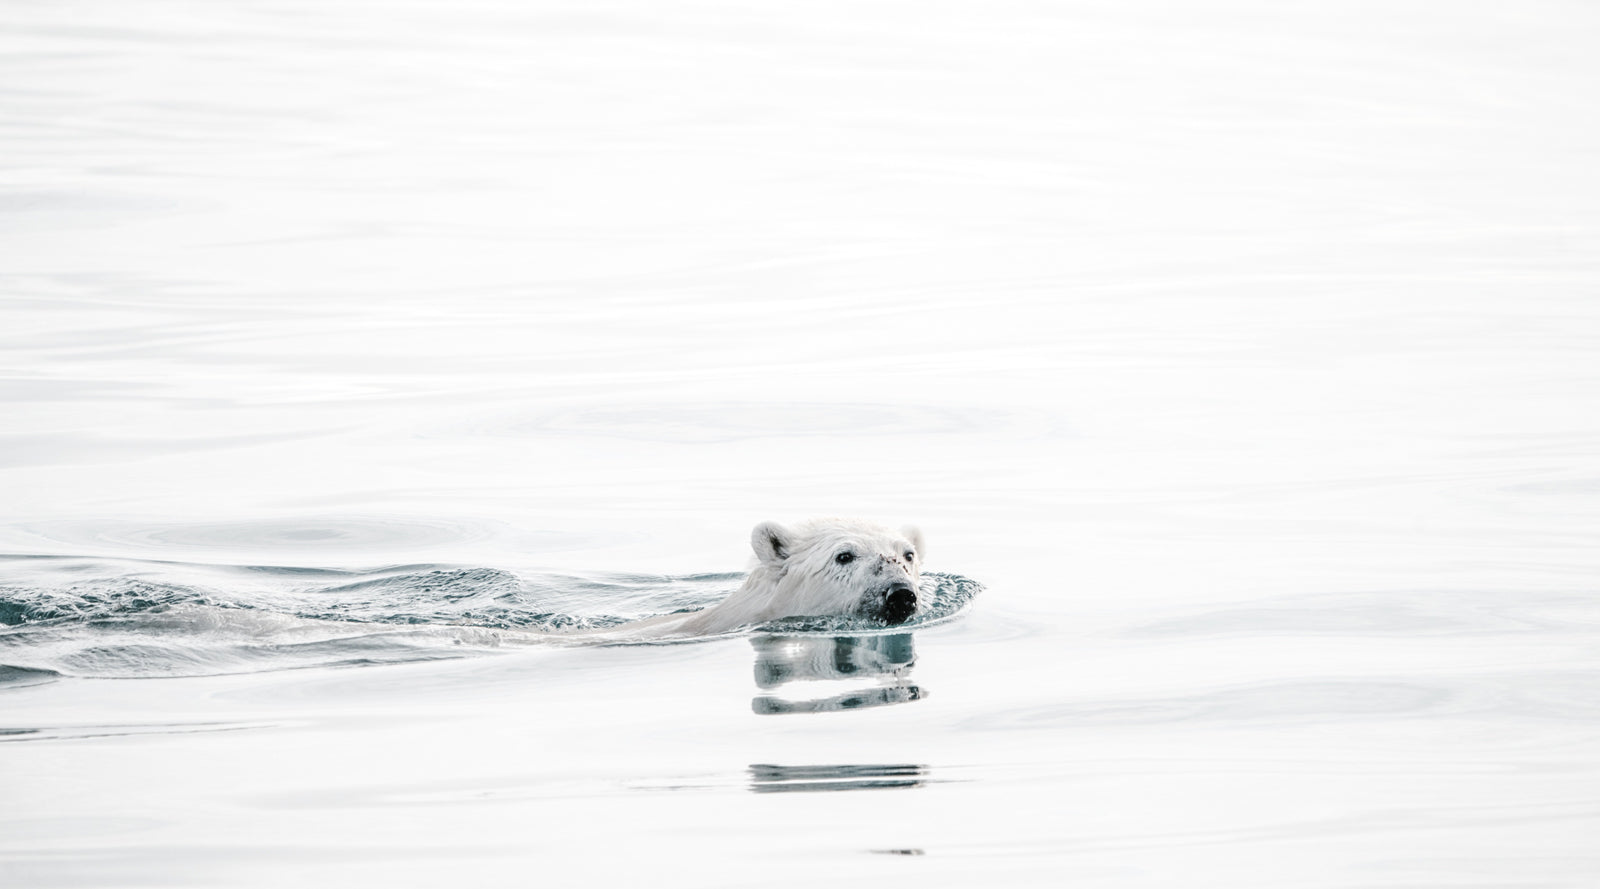 10 reasons to roar about Polar Bears International